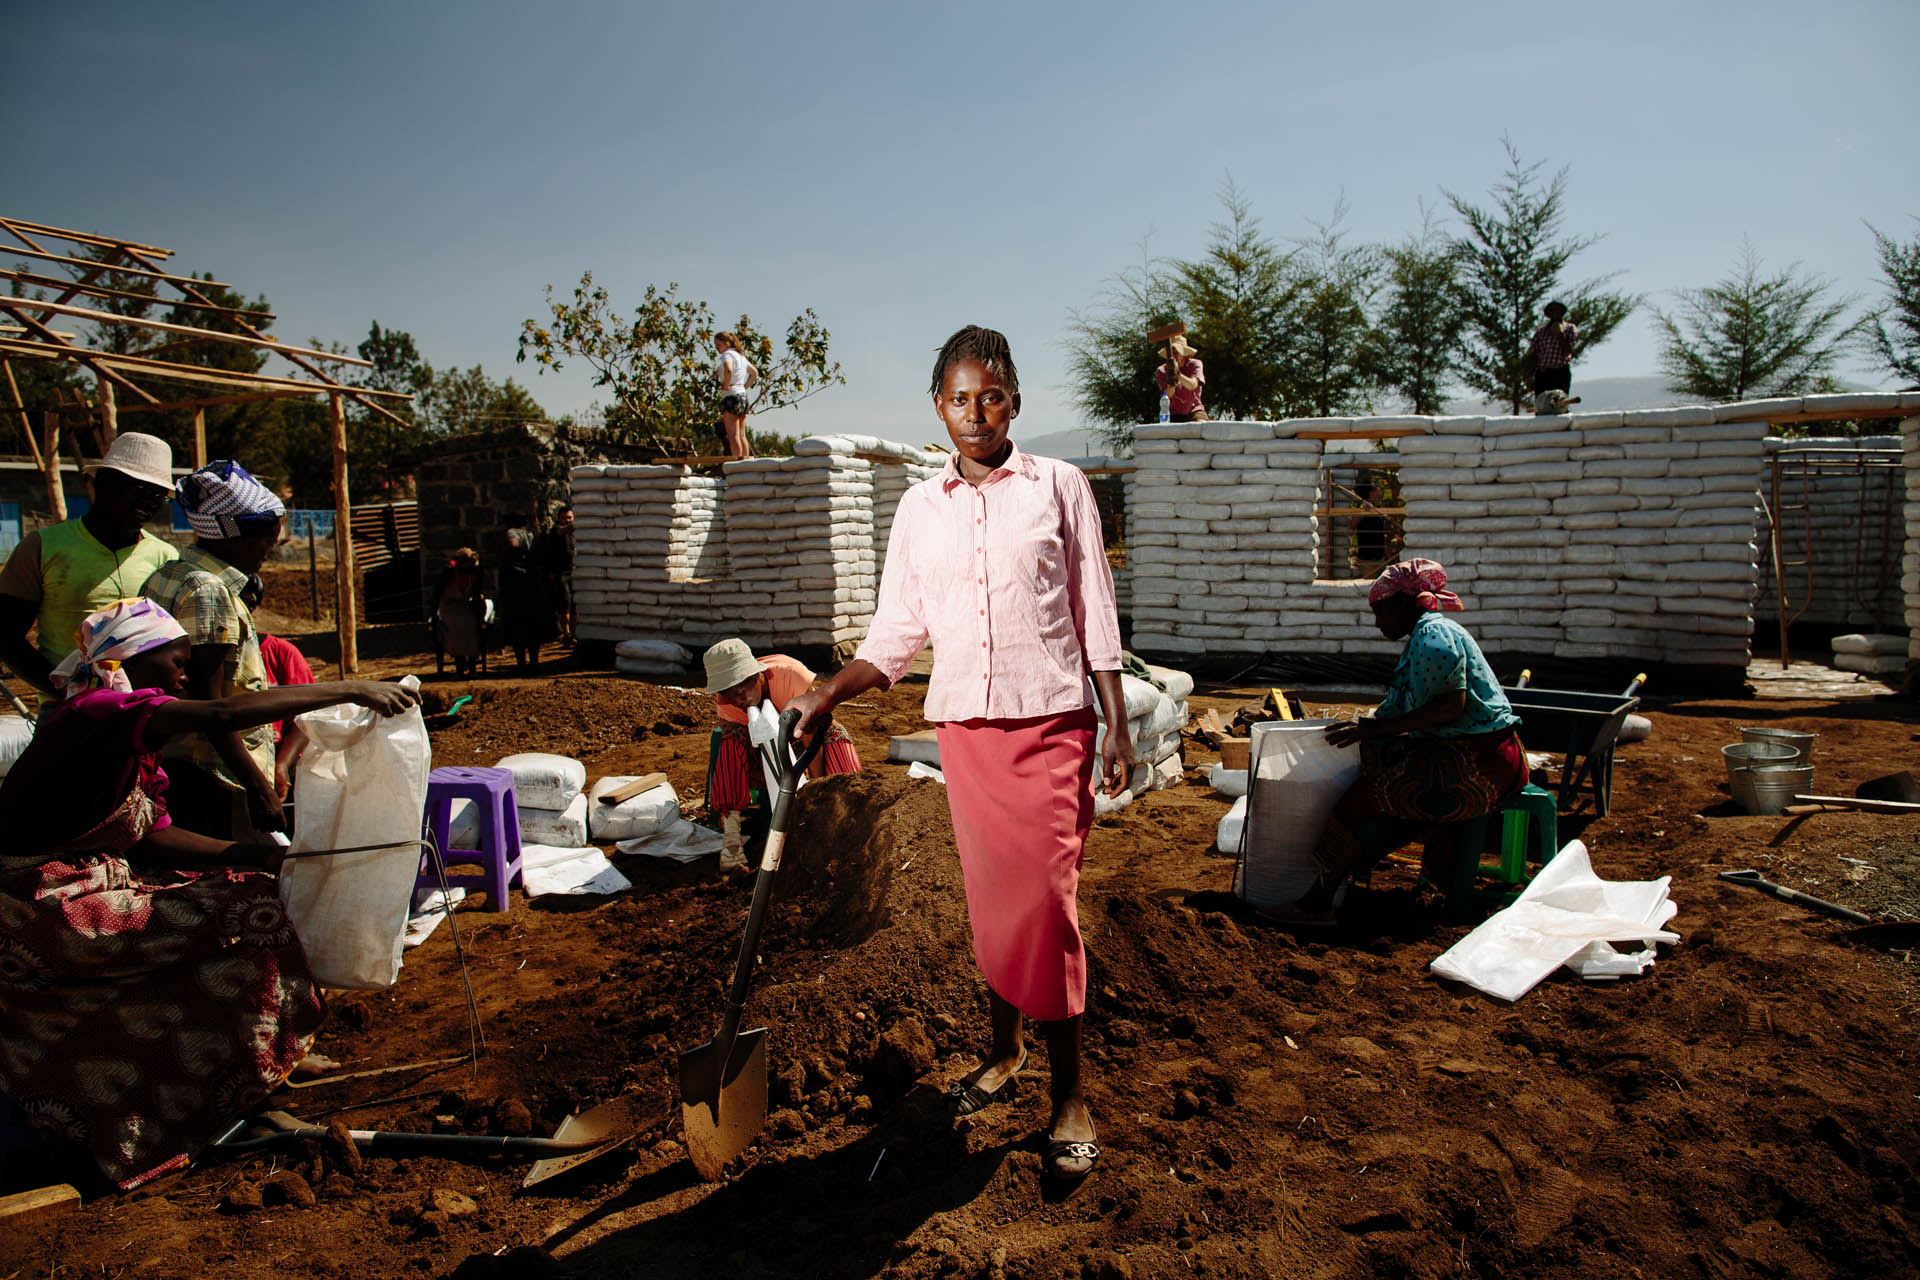 Worker on the £1K House building site, Nakuru, Kenya. Commissioned by Orkidstudio